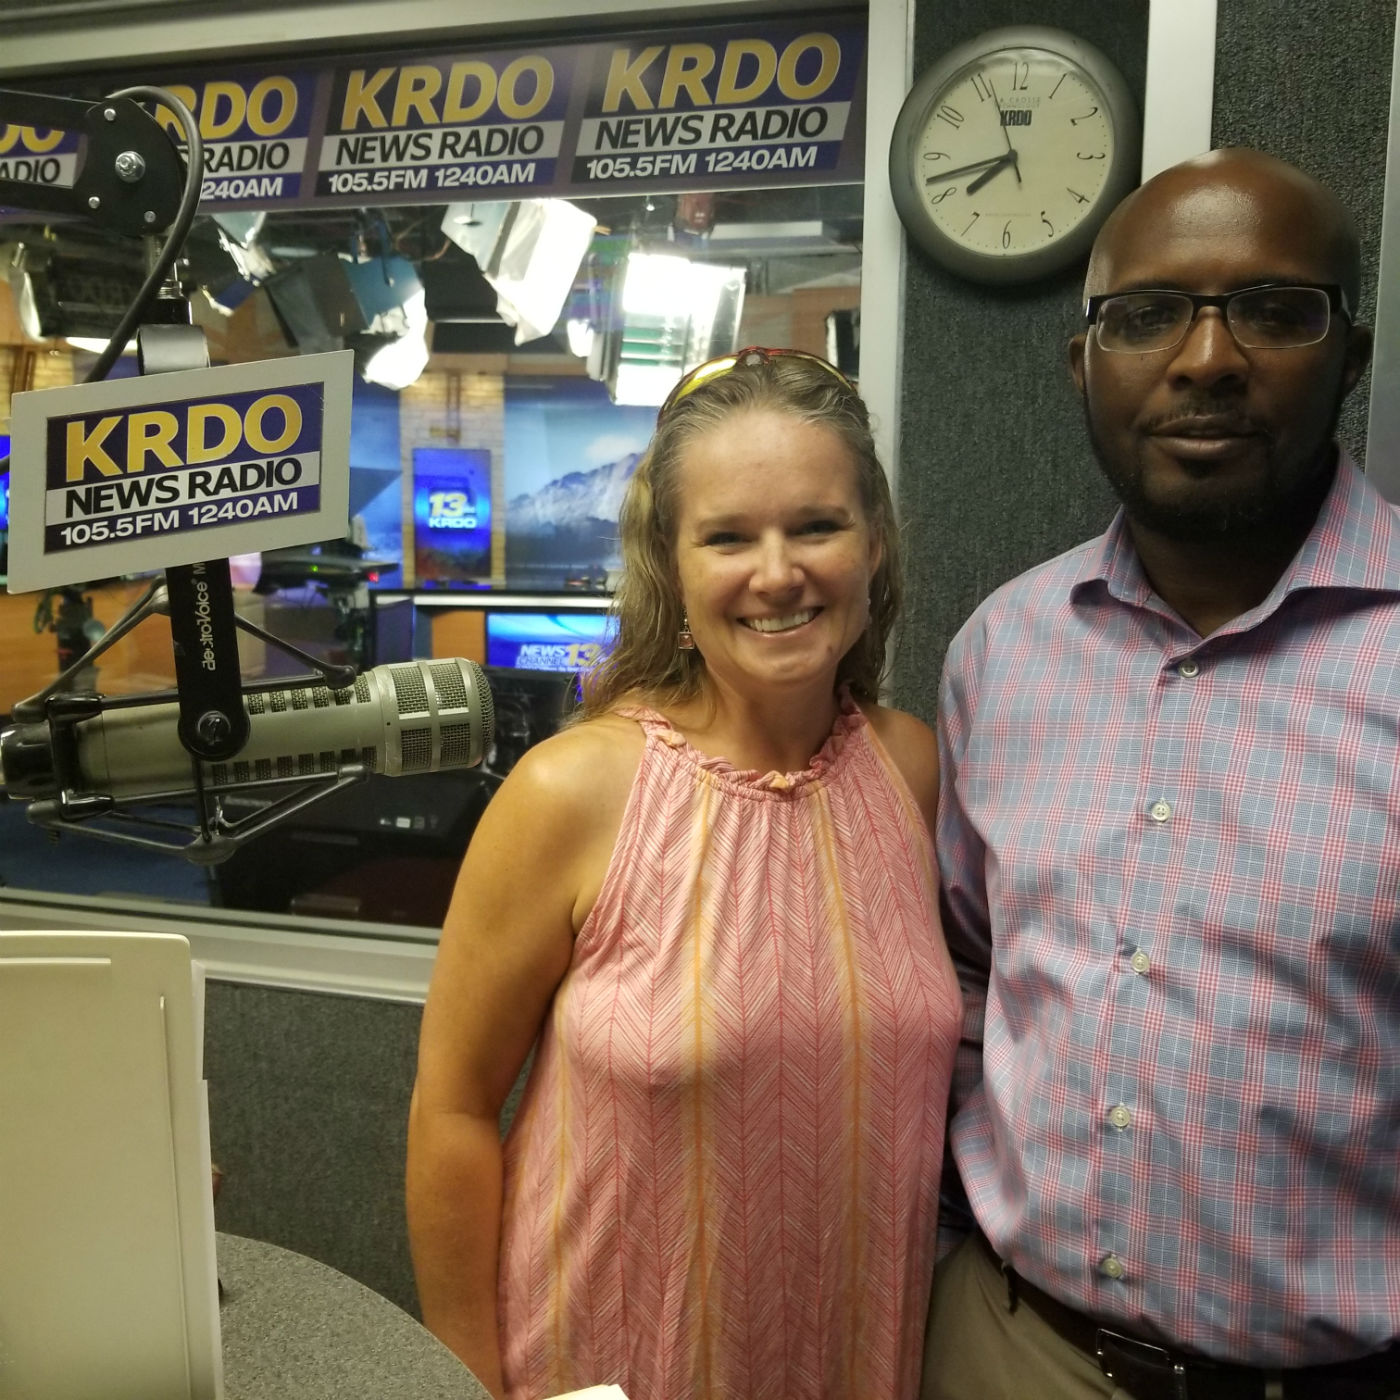 KRDO's Morning News - July 23, 2018